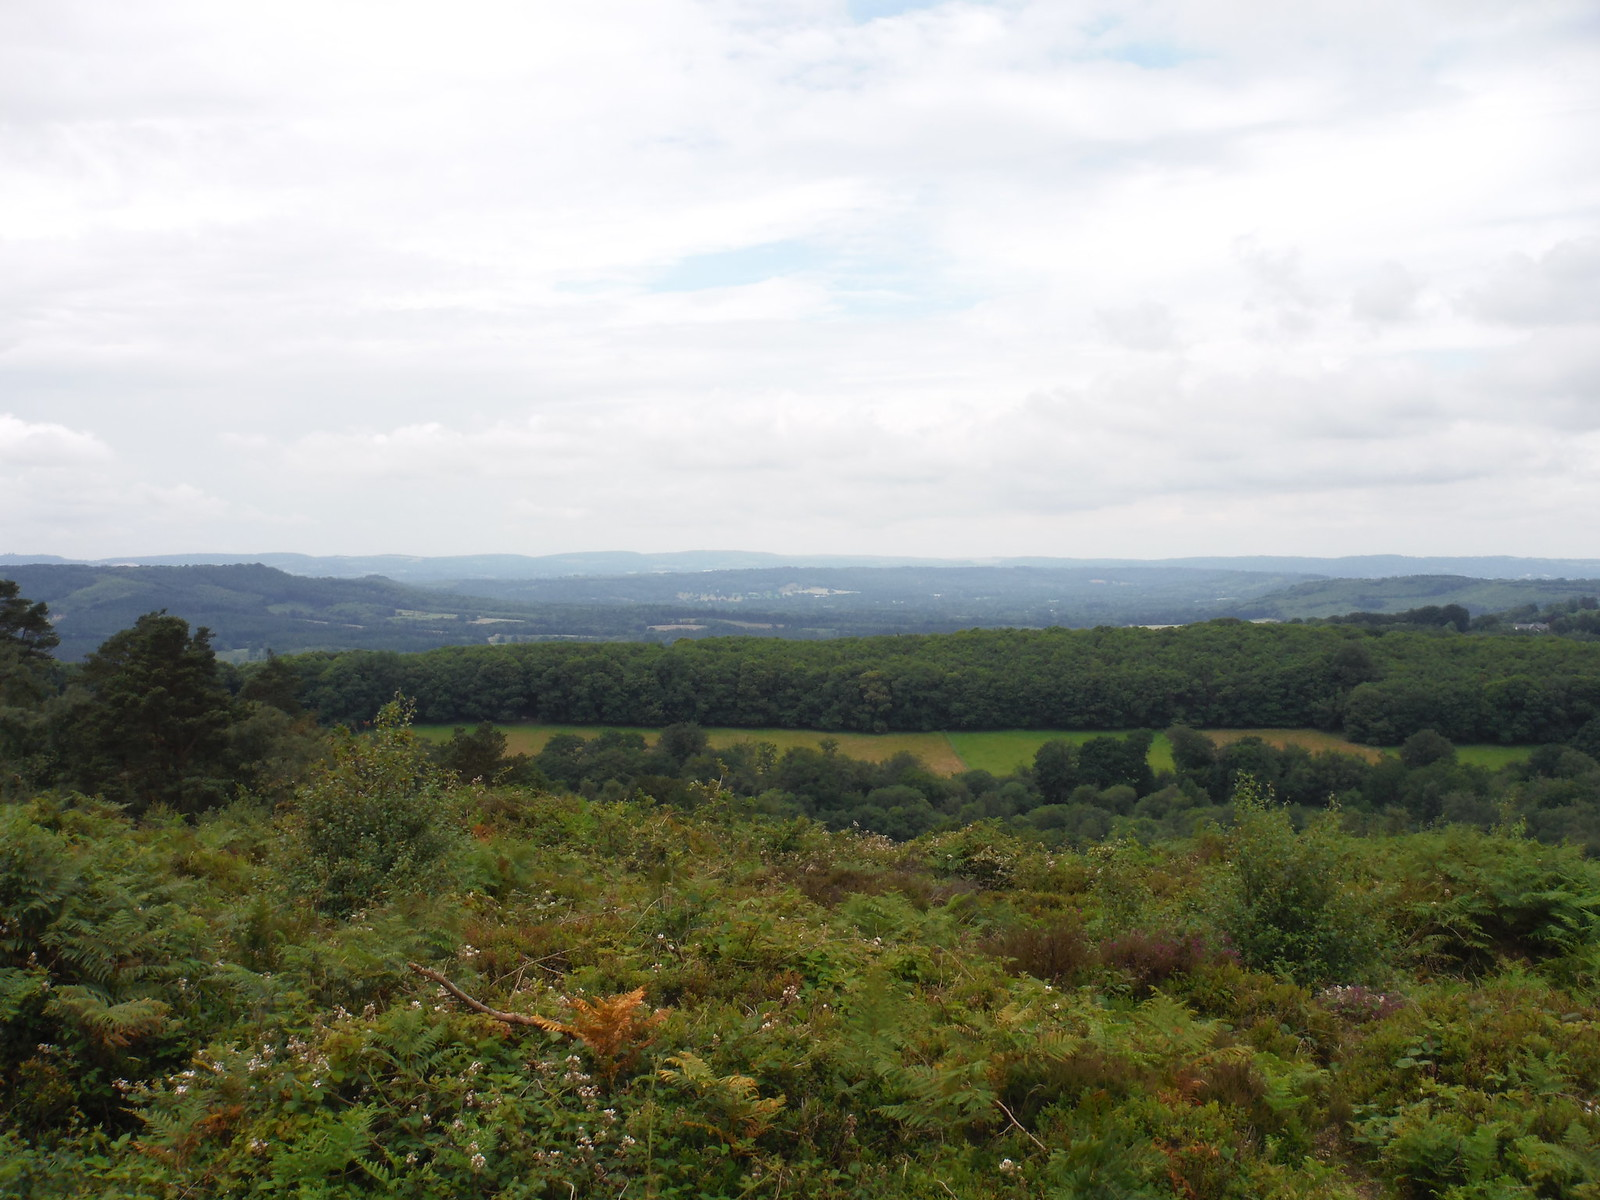 Westerly View from Black Down SWC Walk 48 Haslemere to Midhurst (via Lurgashall or Lickfold)